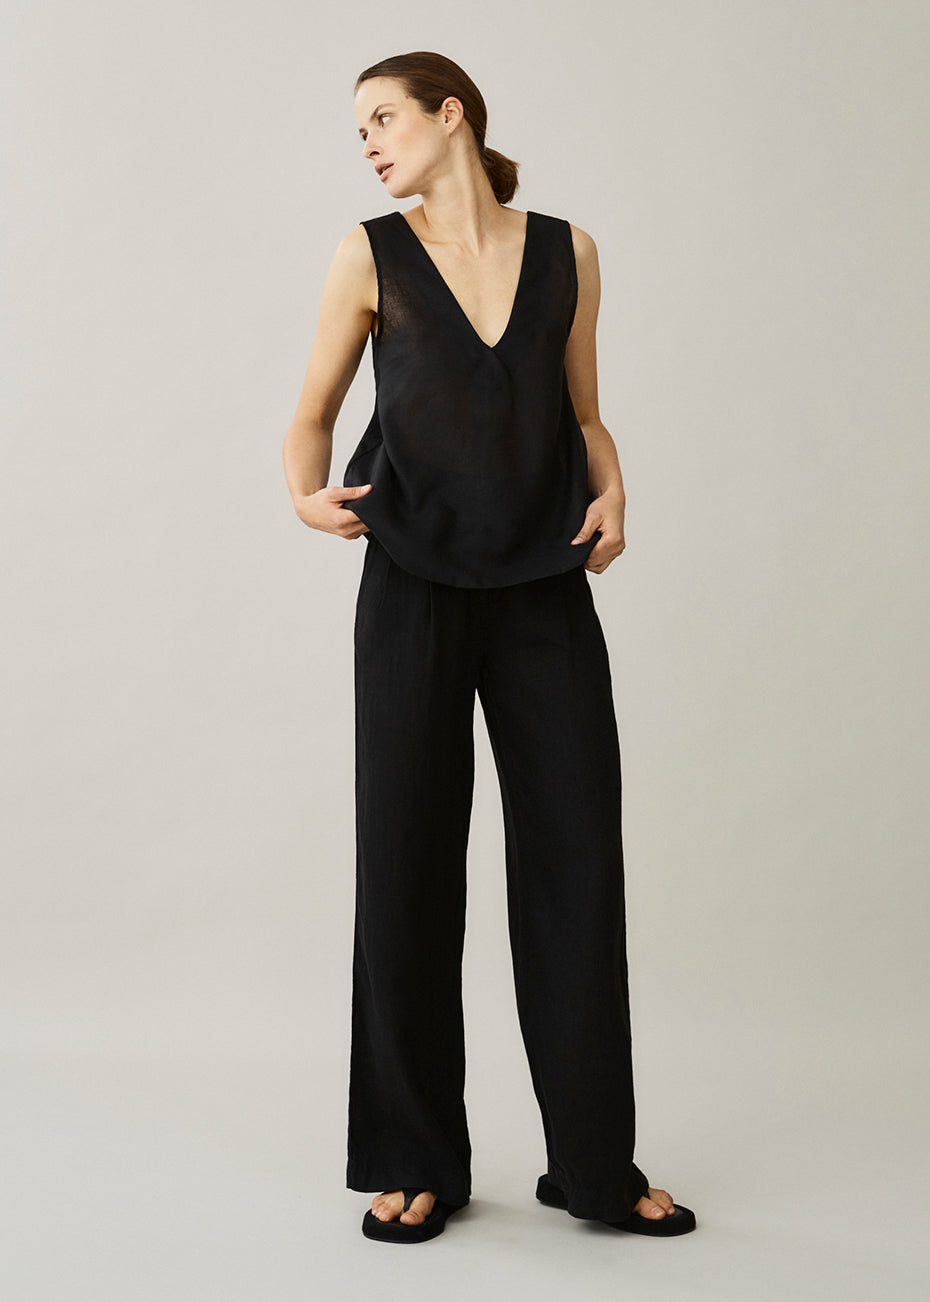 Lille Black Linen Top